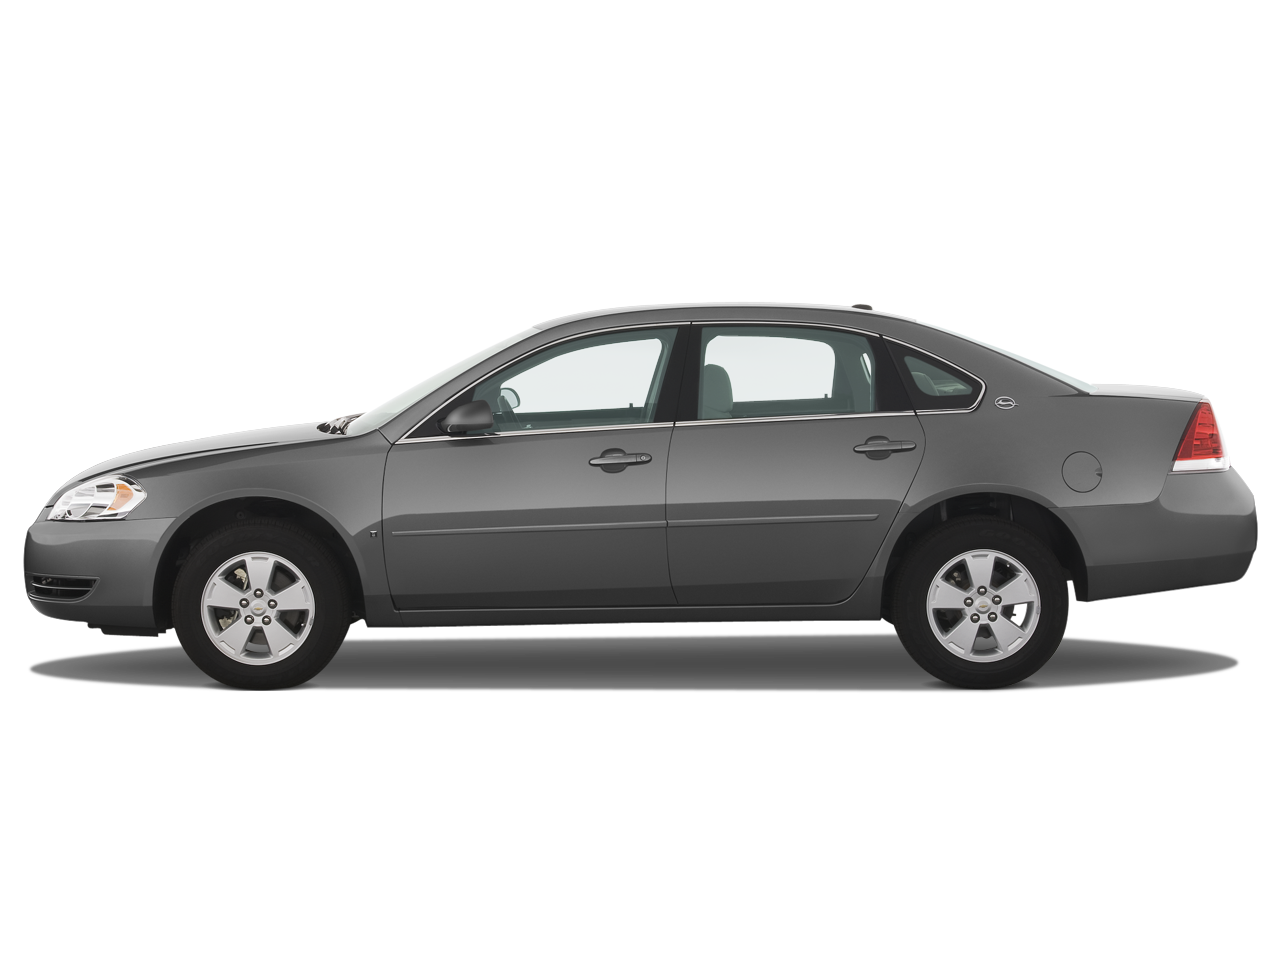 2007 2008 Chevrolet Impala Owners Suing Gm Over Tire Wear